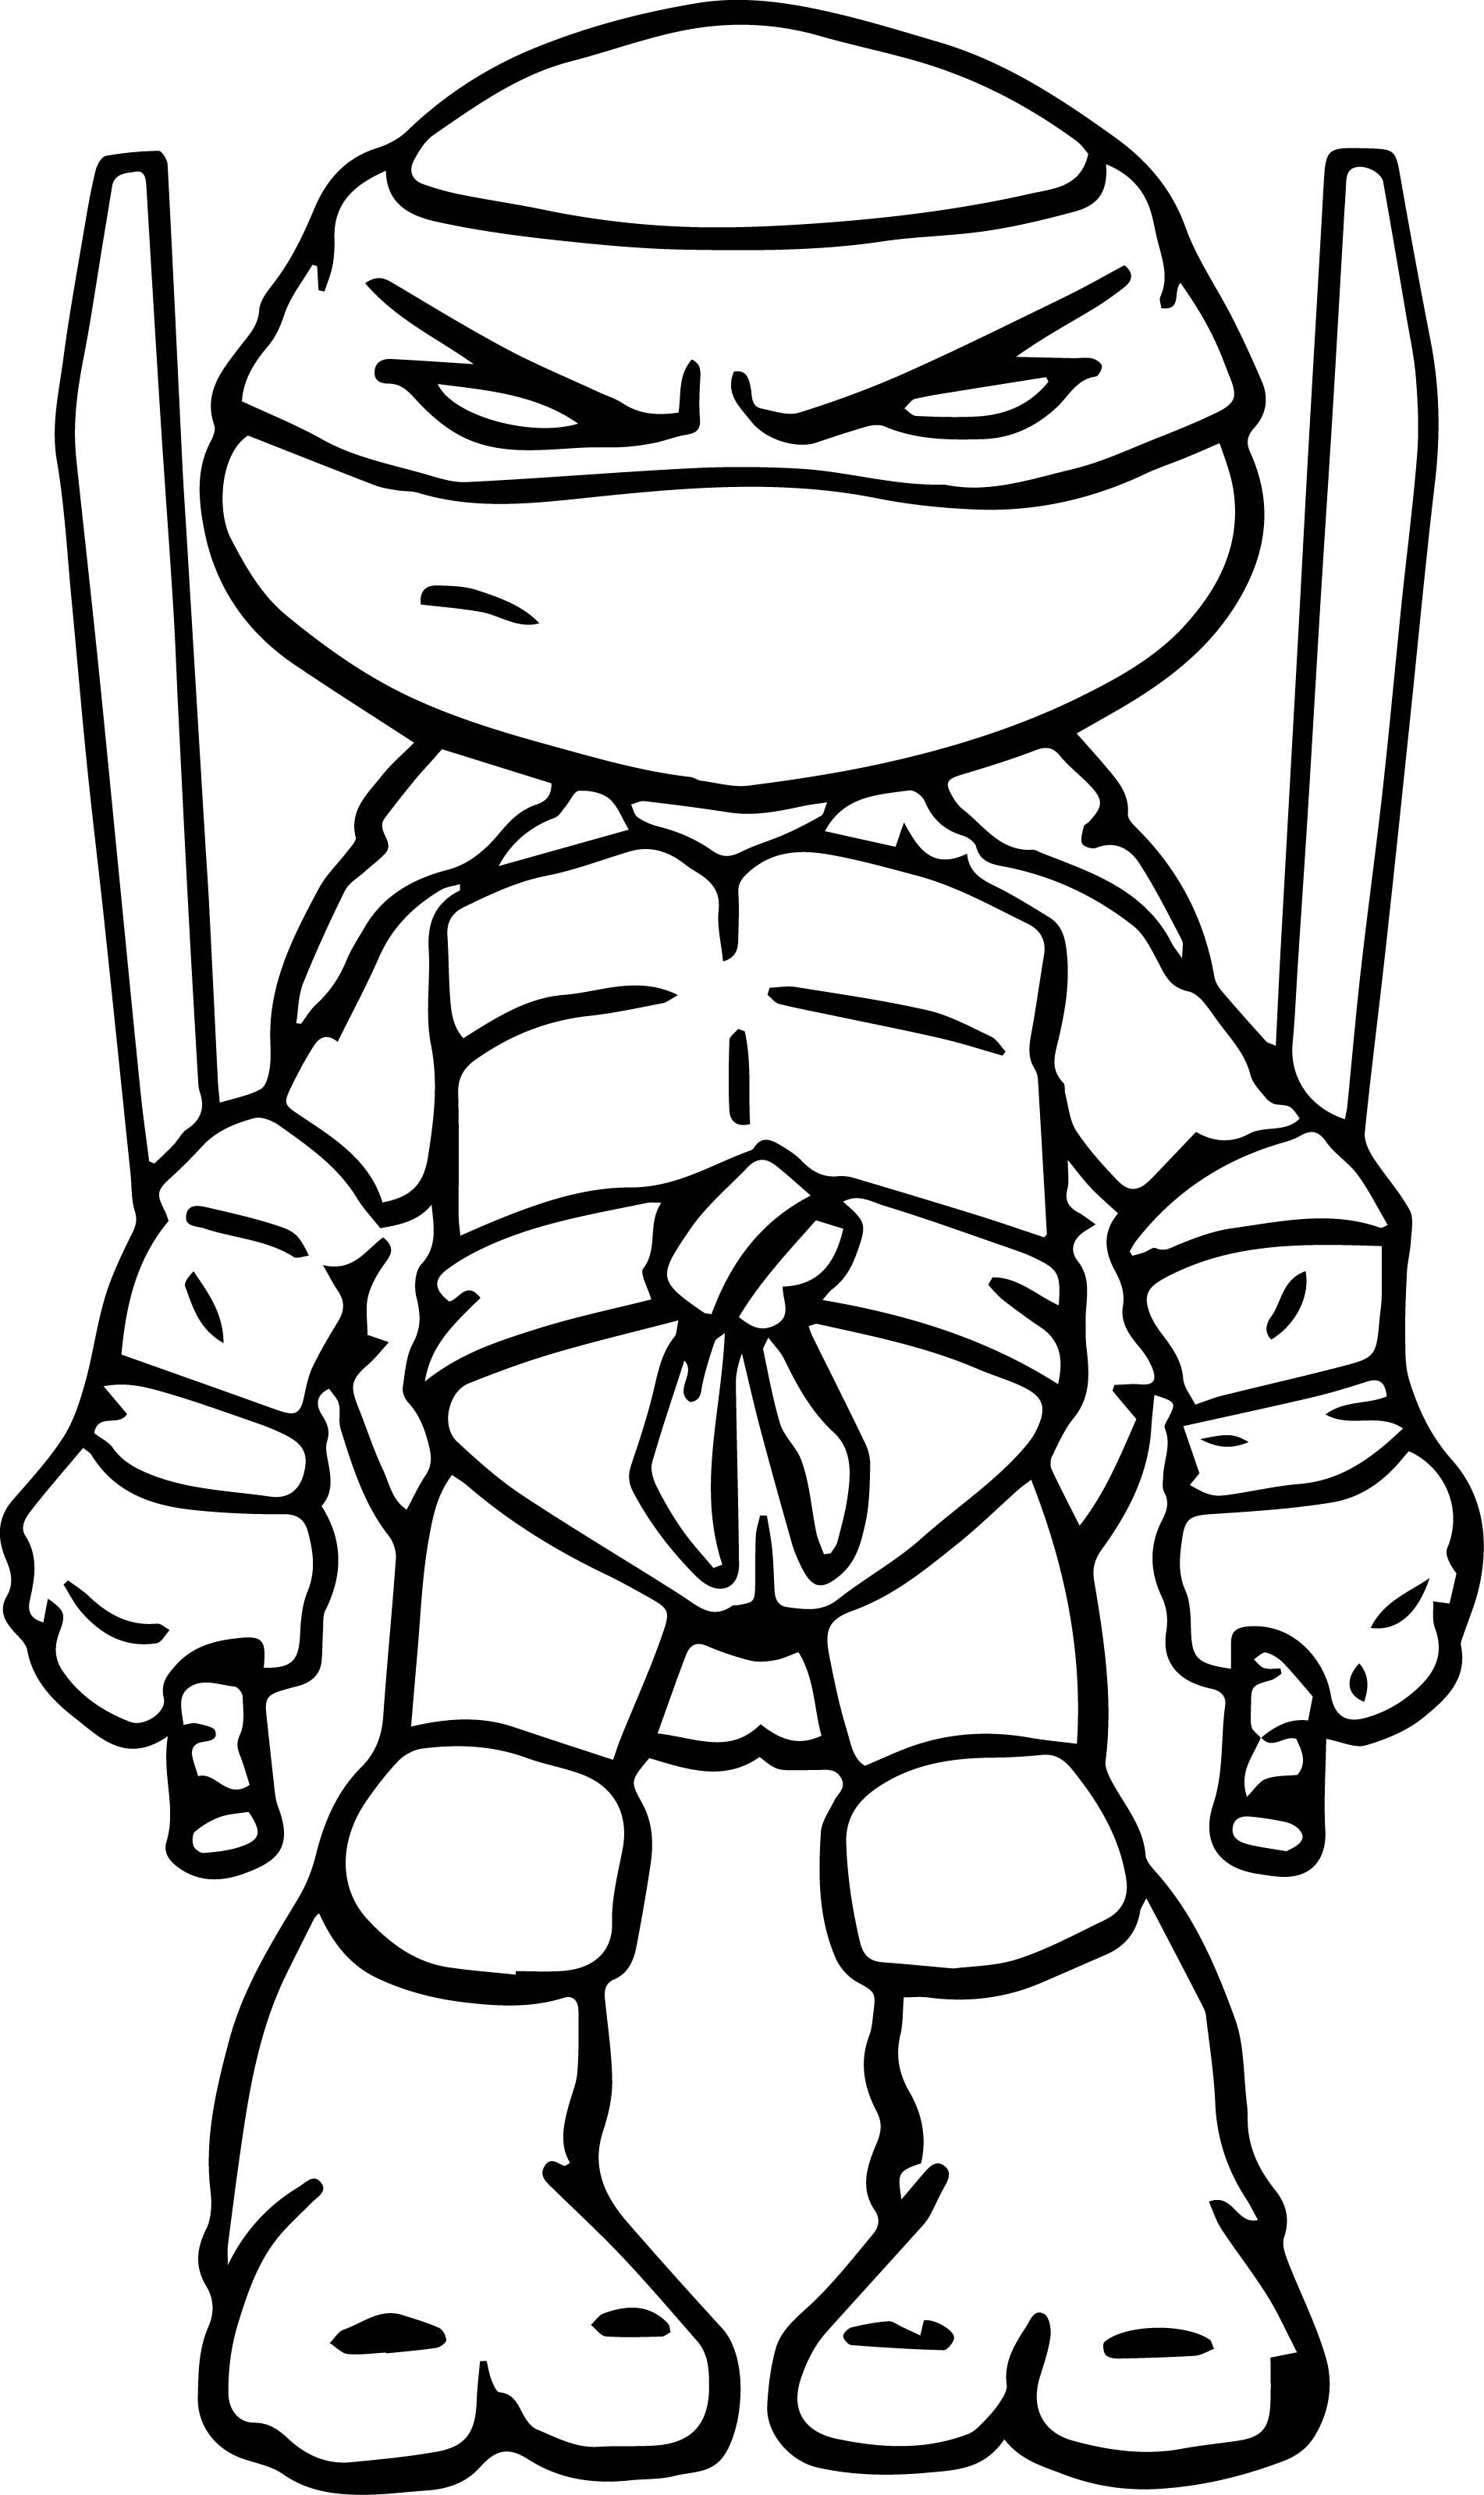 ninja turtles art coloring page | tmnt party | pinterest | ninja ... - Ninja Turtle Pizza Coloring Pages